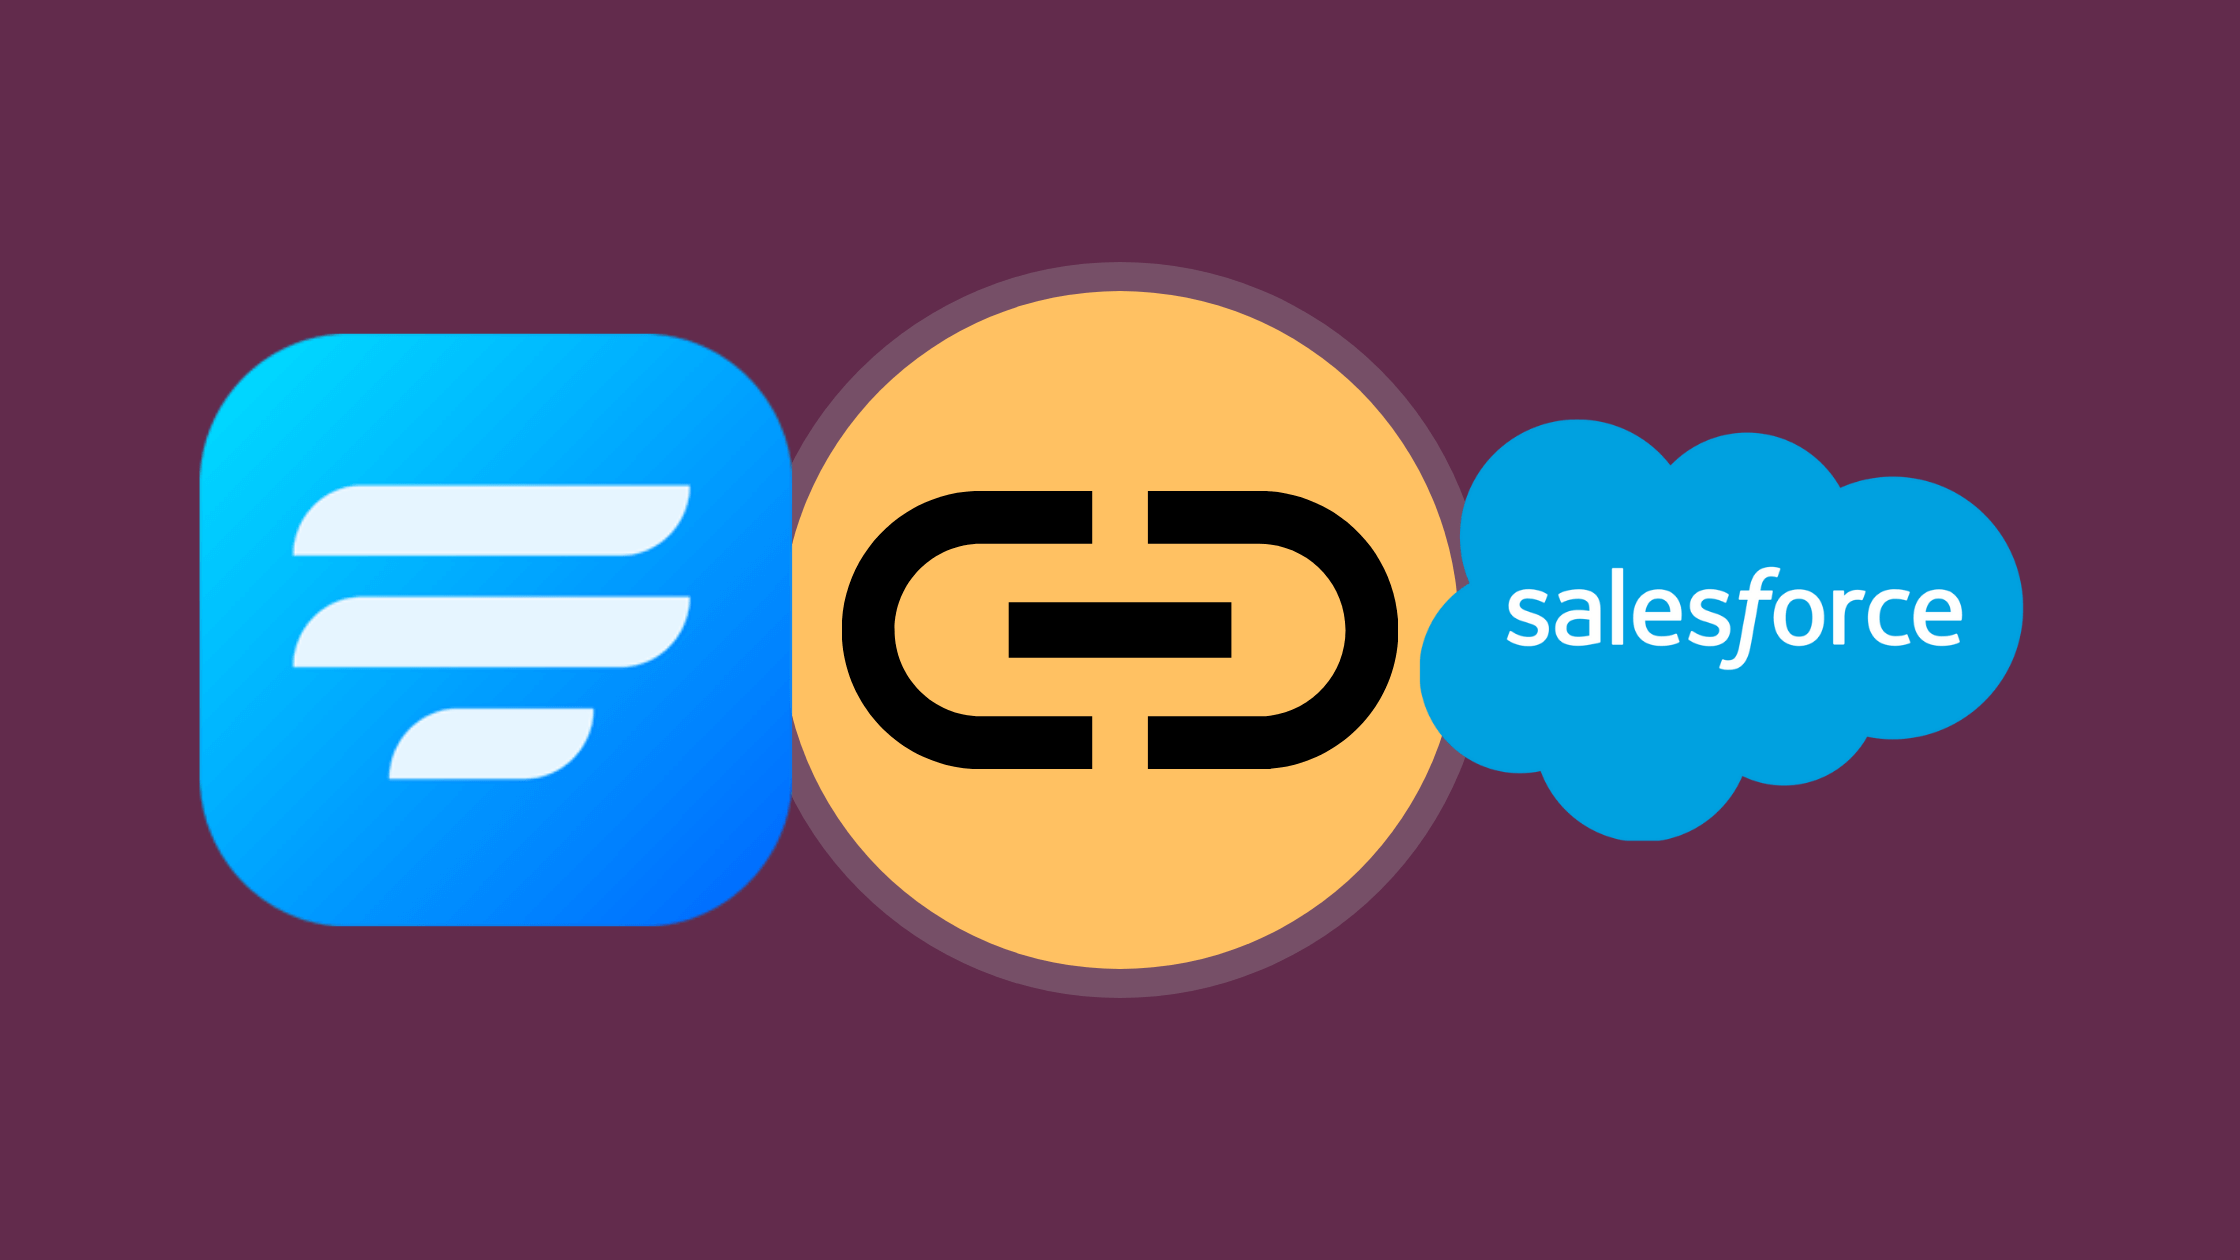 How to integrate Salesforce - Fluent Forms Pro